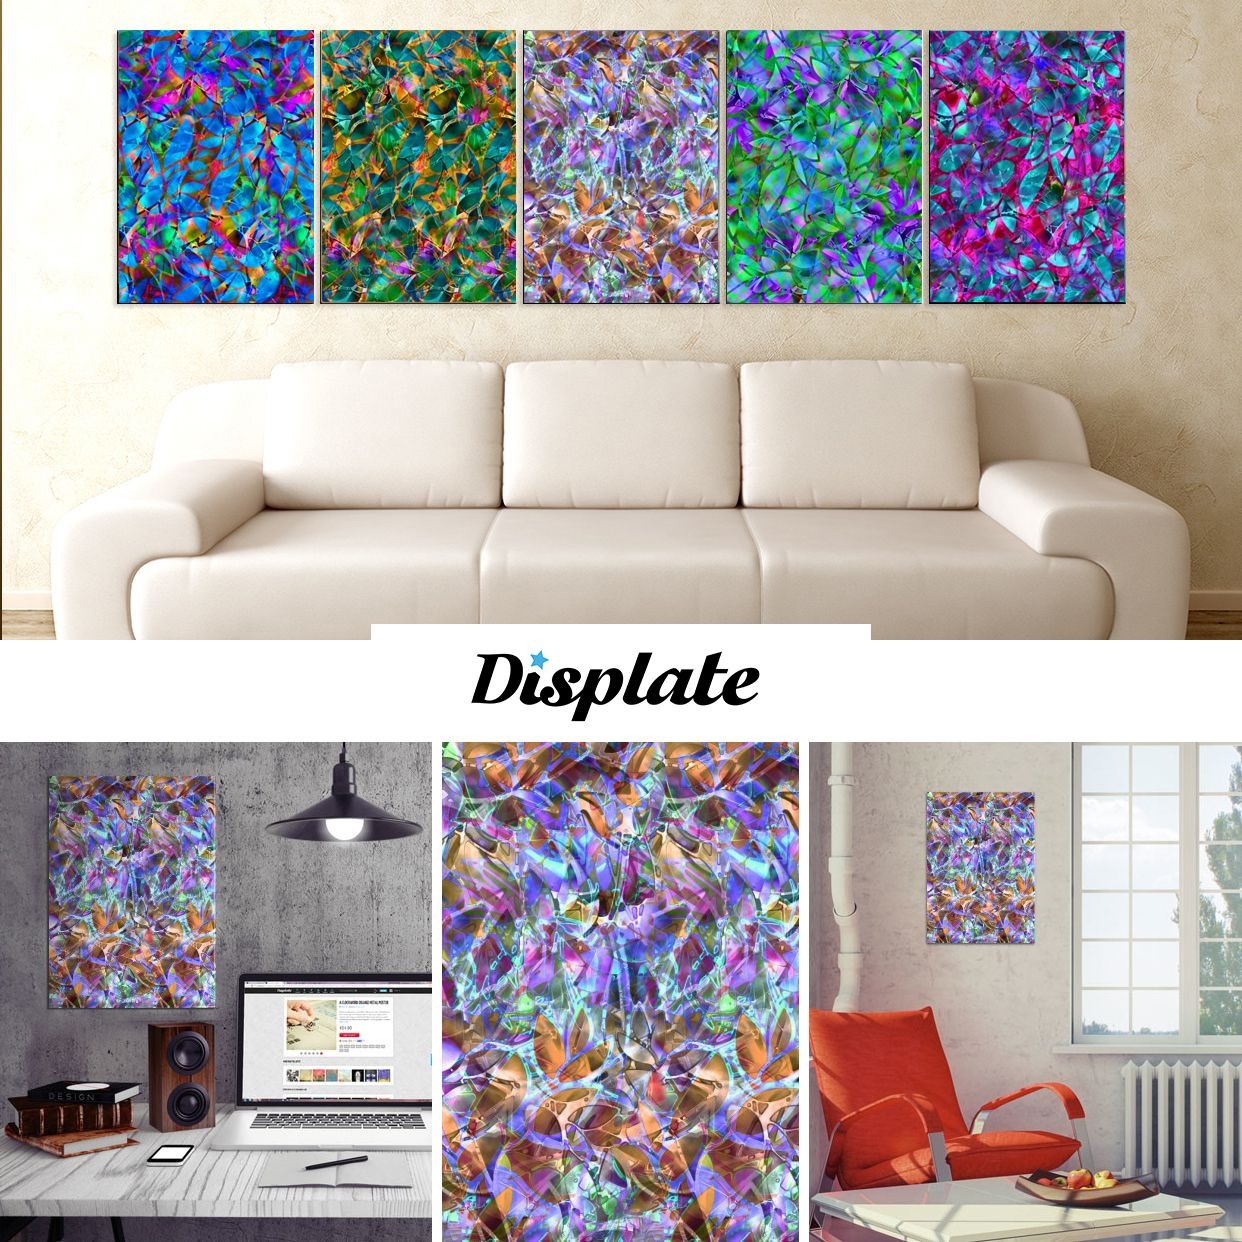 SOLD FLORAL STAINED GLASS G44! http://displate.com/medusa81 #Displate #Poster #metal #MadeOutOfMetal #lilac #gold #turquoise #abstract #floral #stainedglass #glass #Graphic #medusagraphicart #medusa81 #artist #medusart #artwork #colorful #colors